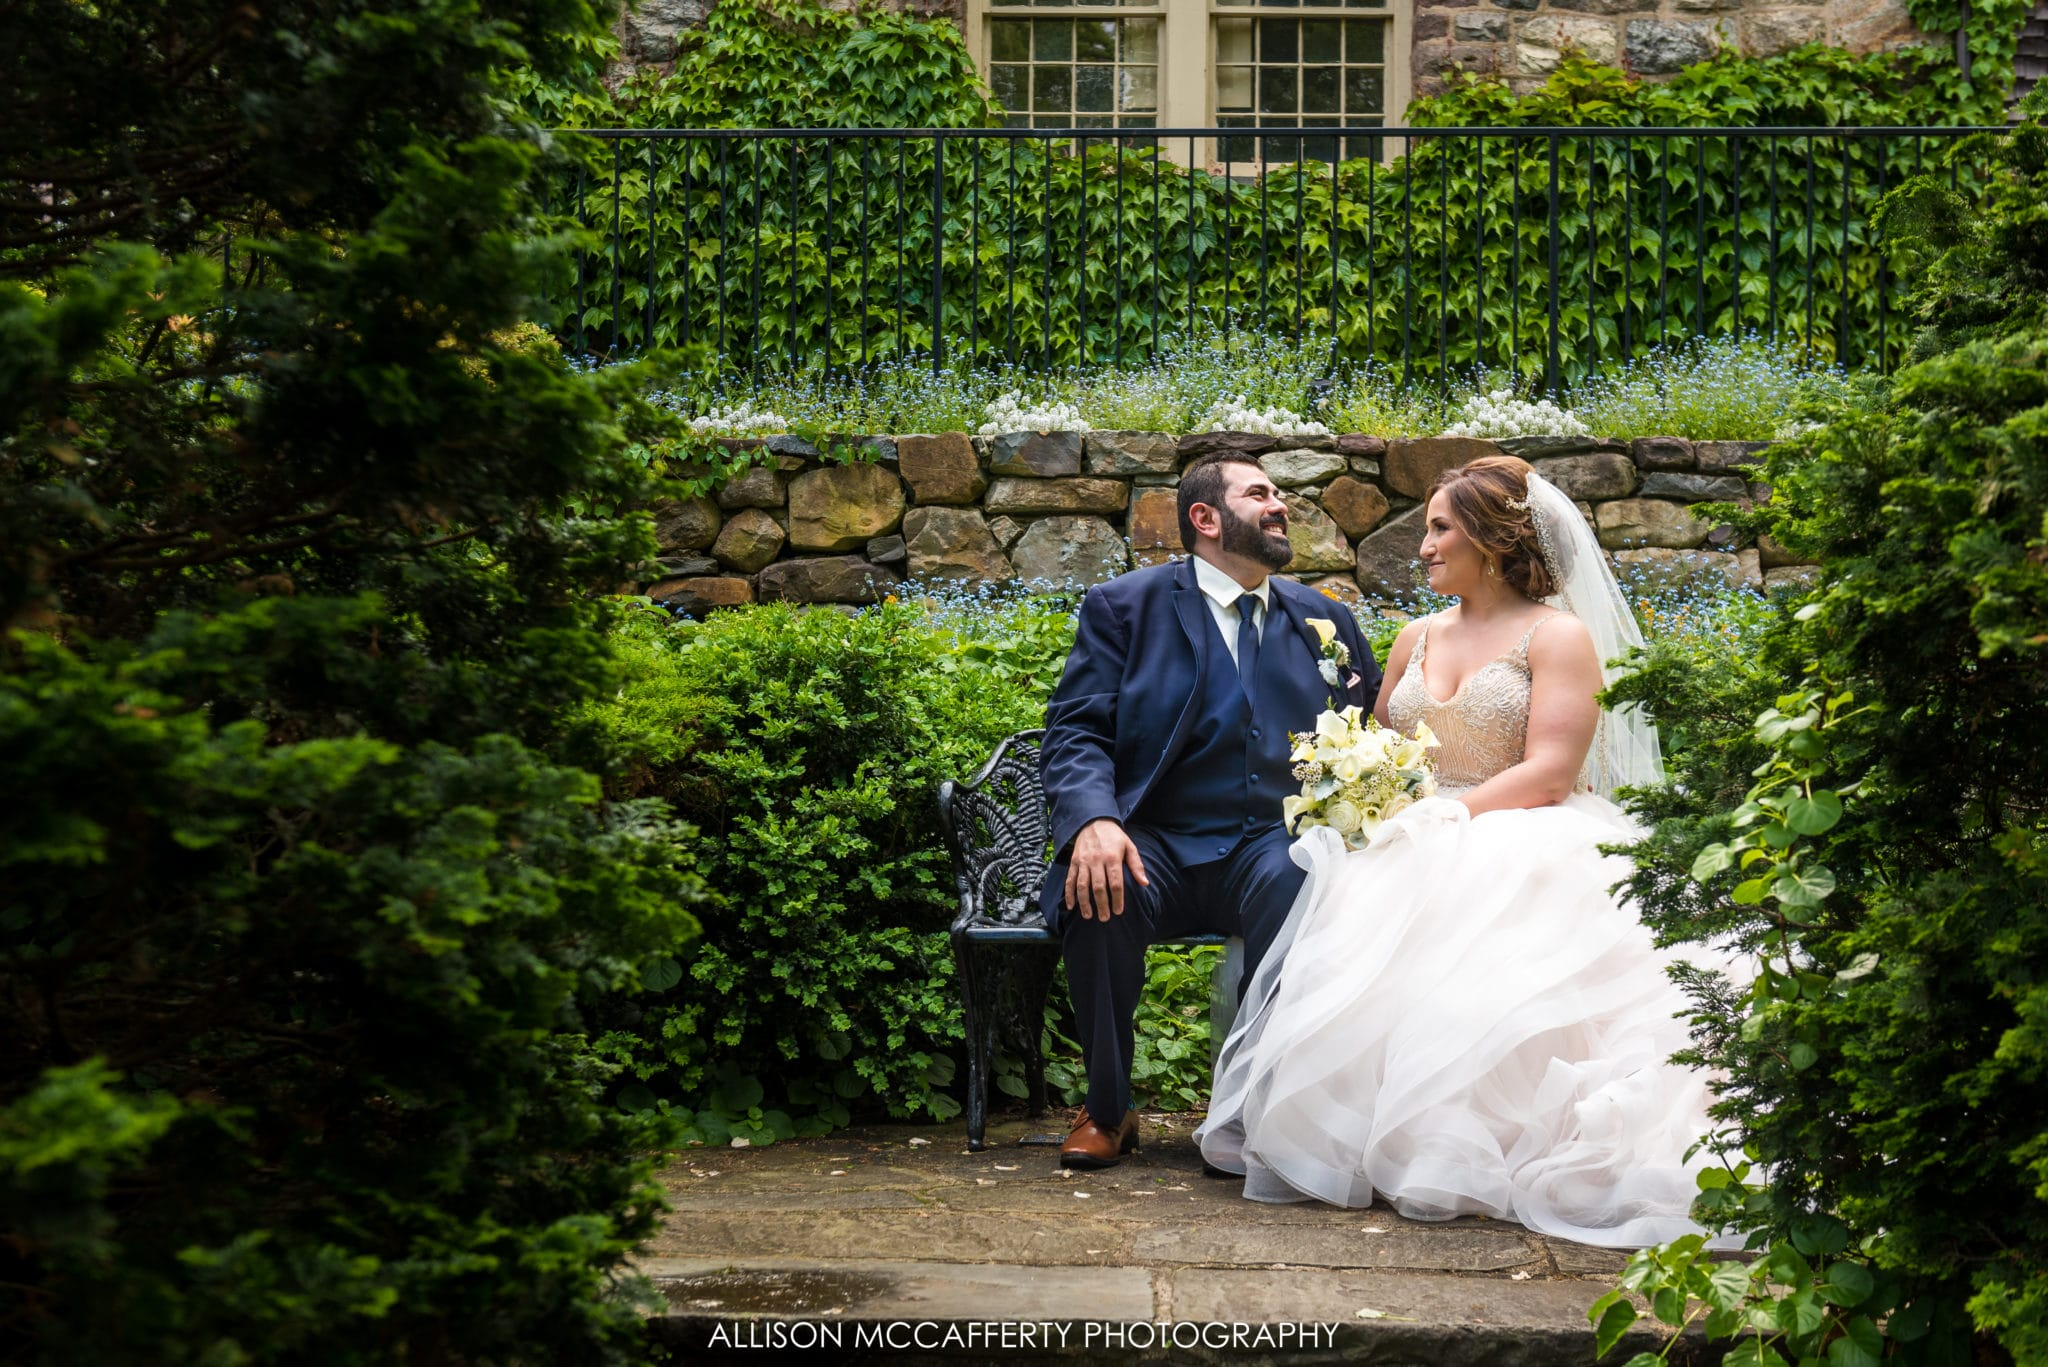 Bride and groom sitting on a bench in a garden